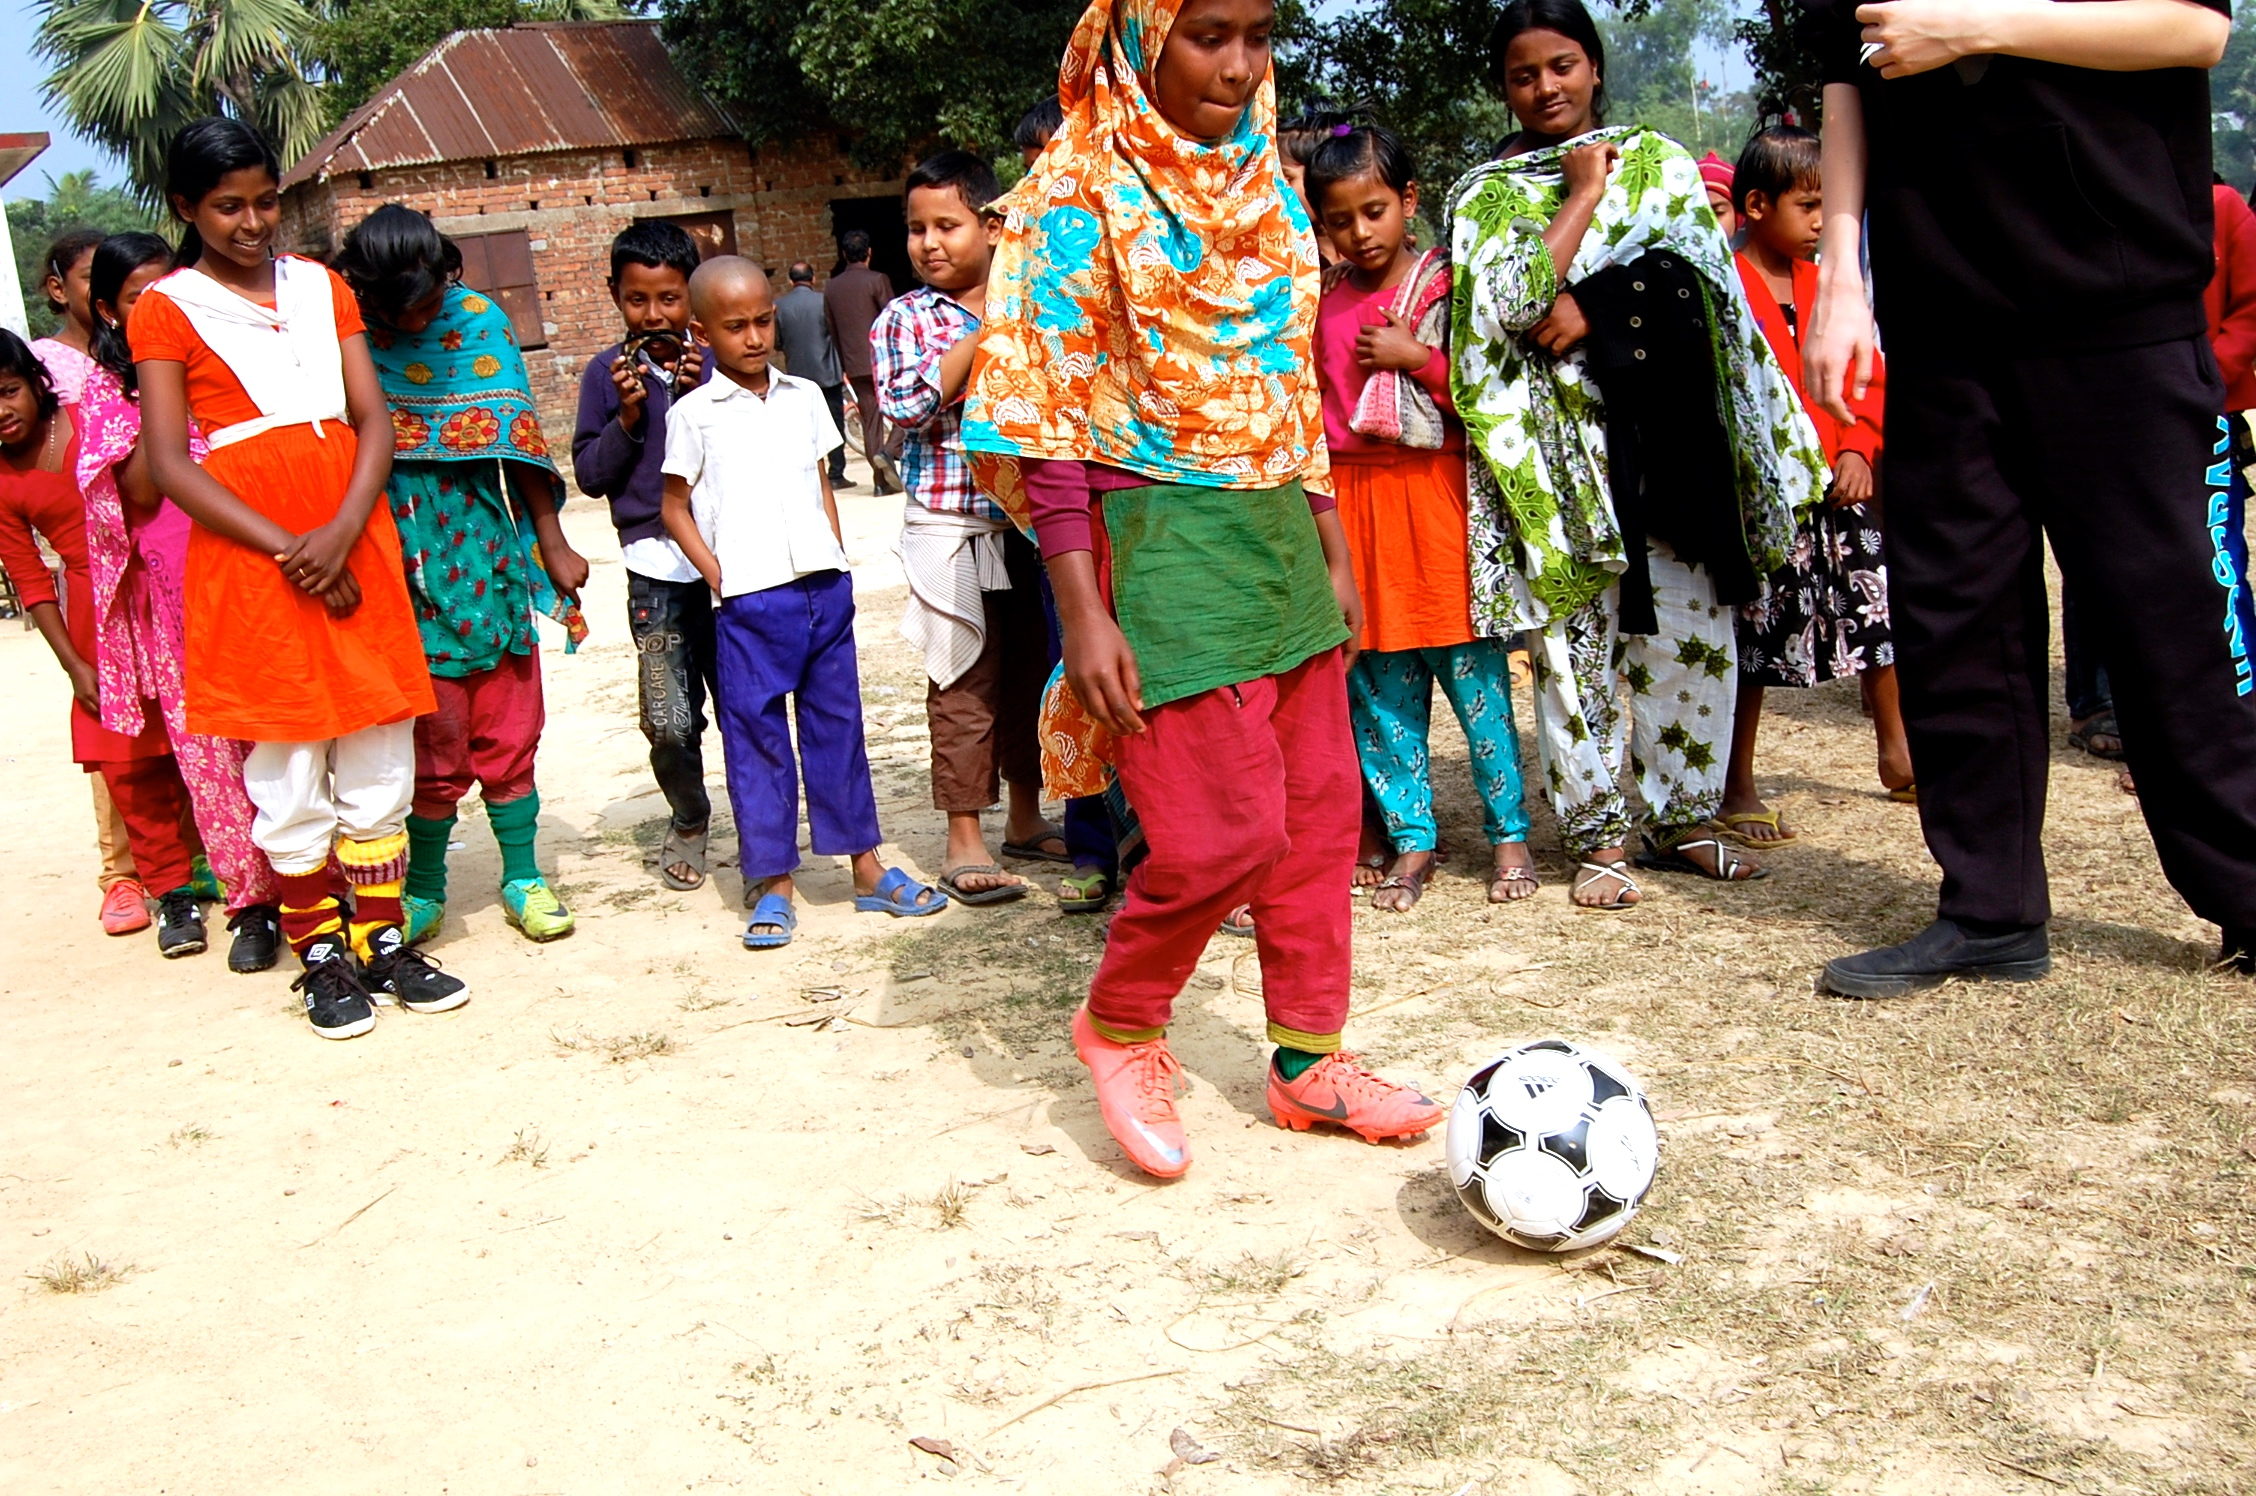 Girl learning soccer